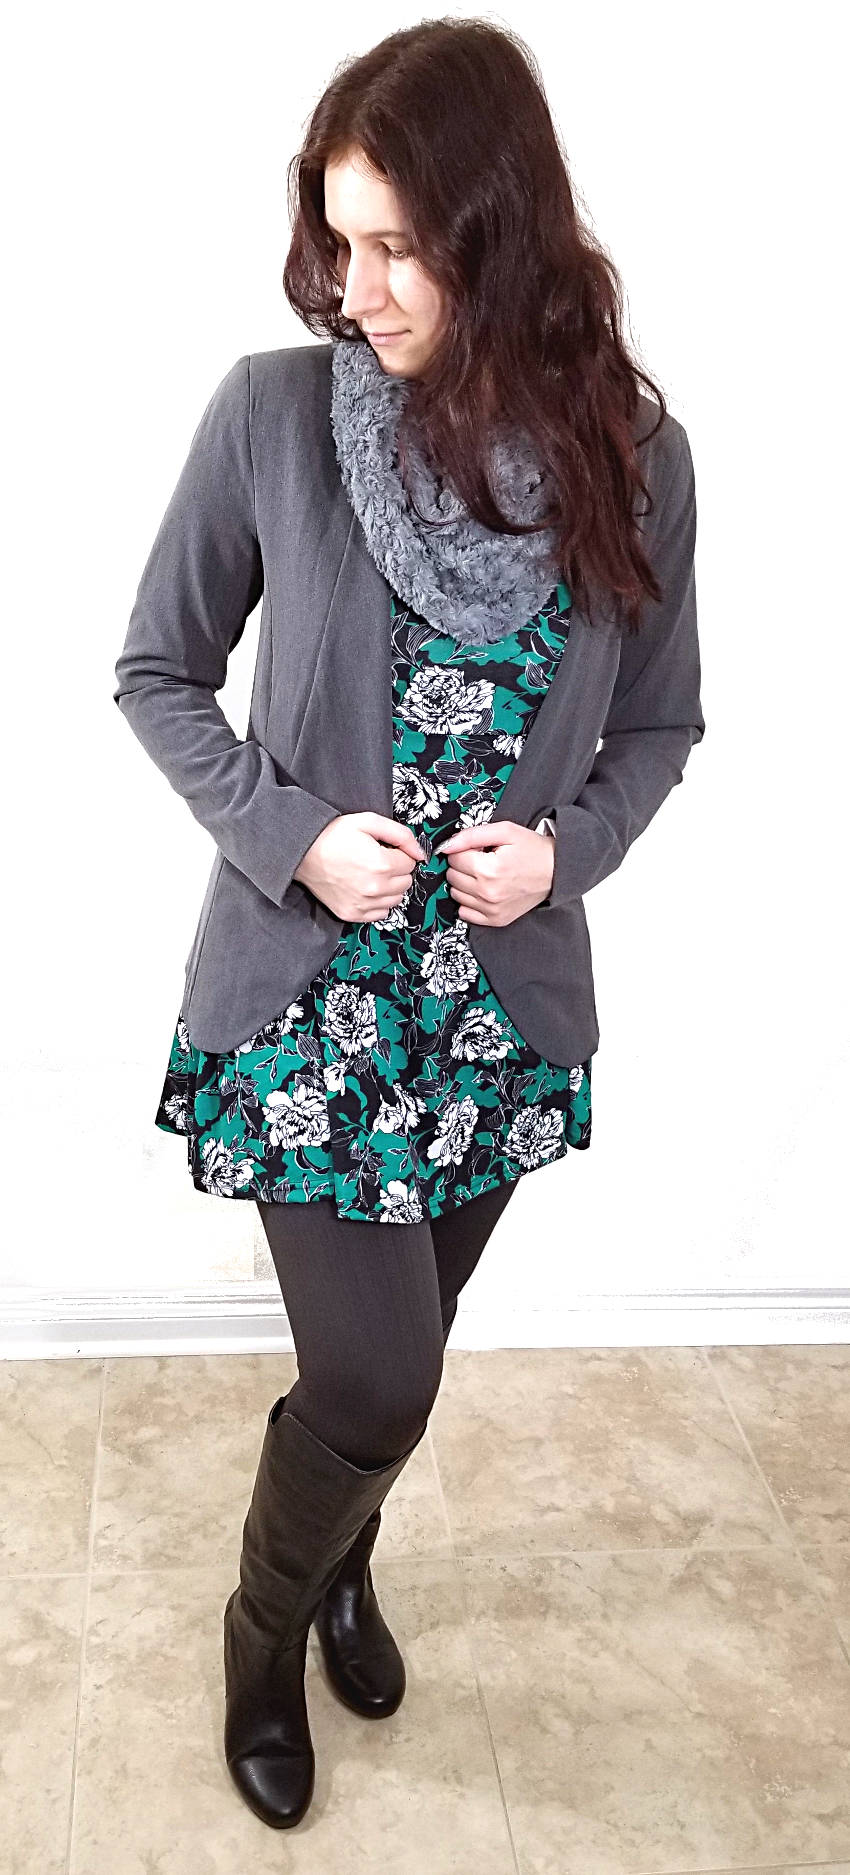 Winter Dress Green Floral Grey Scarf And Blazer Black Courtney Polar Bear Style Leggings Boots